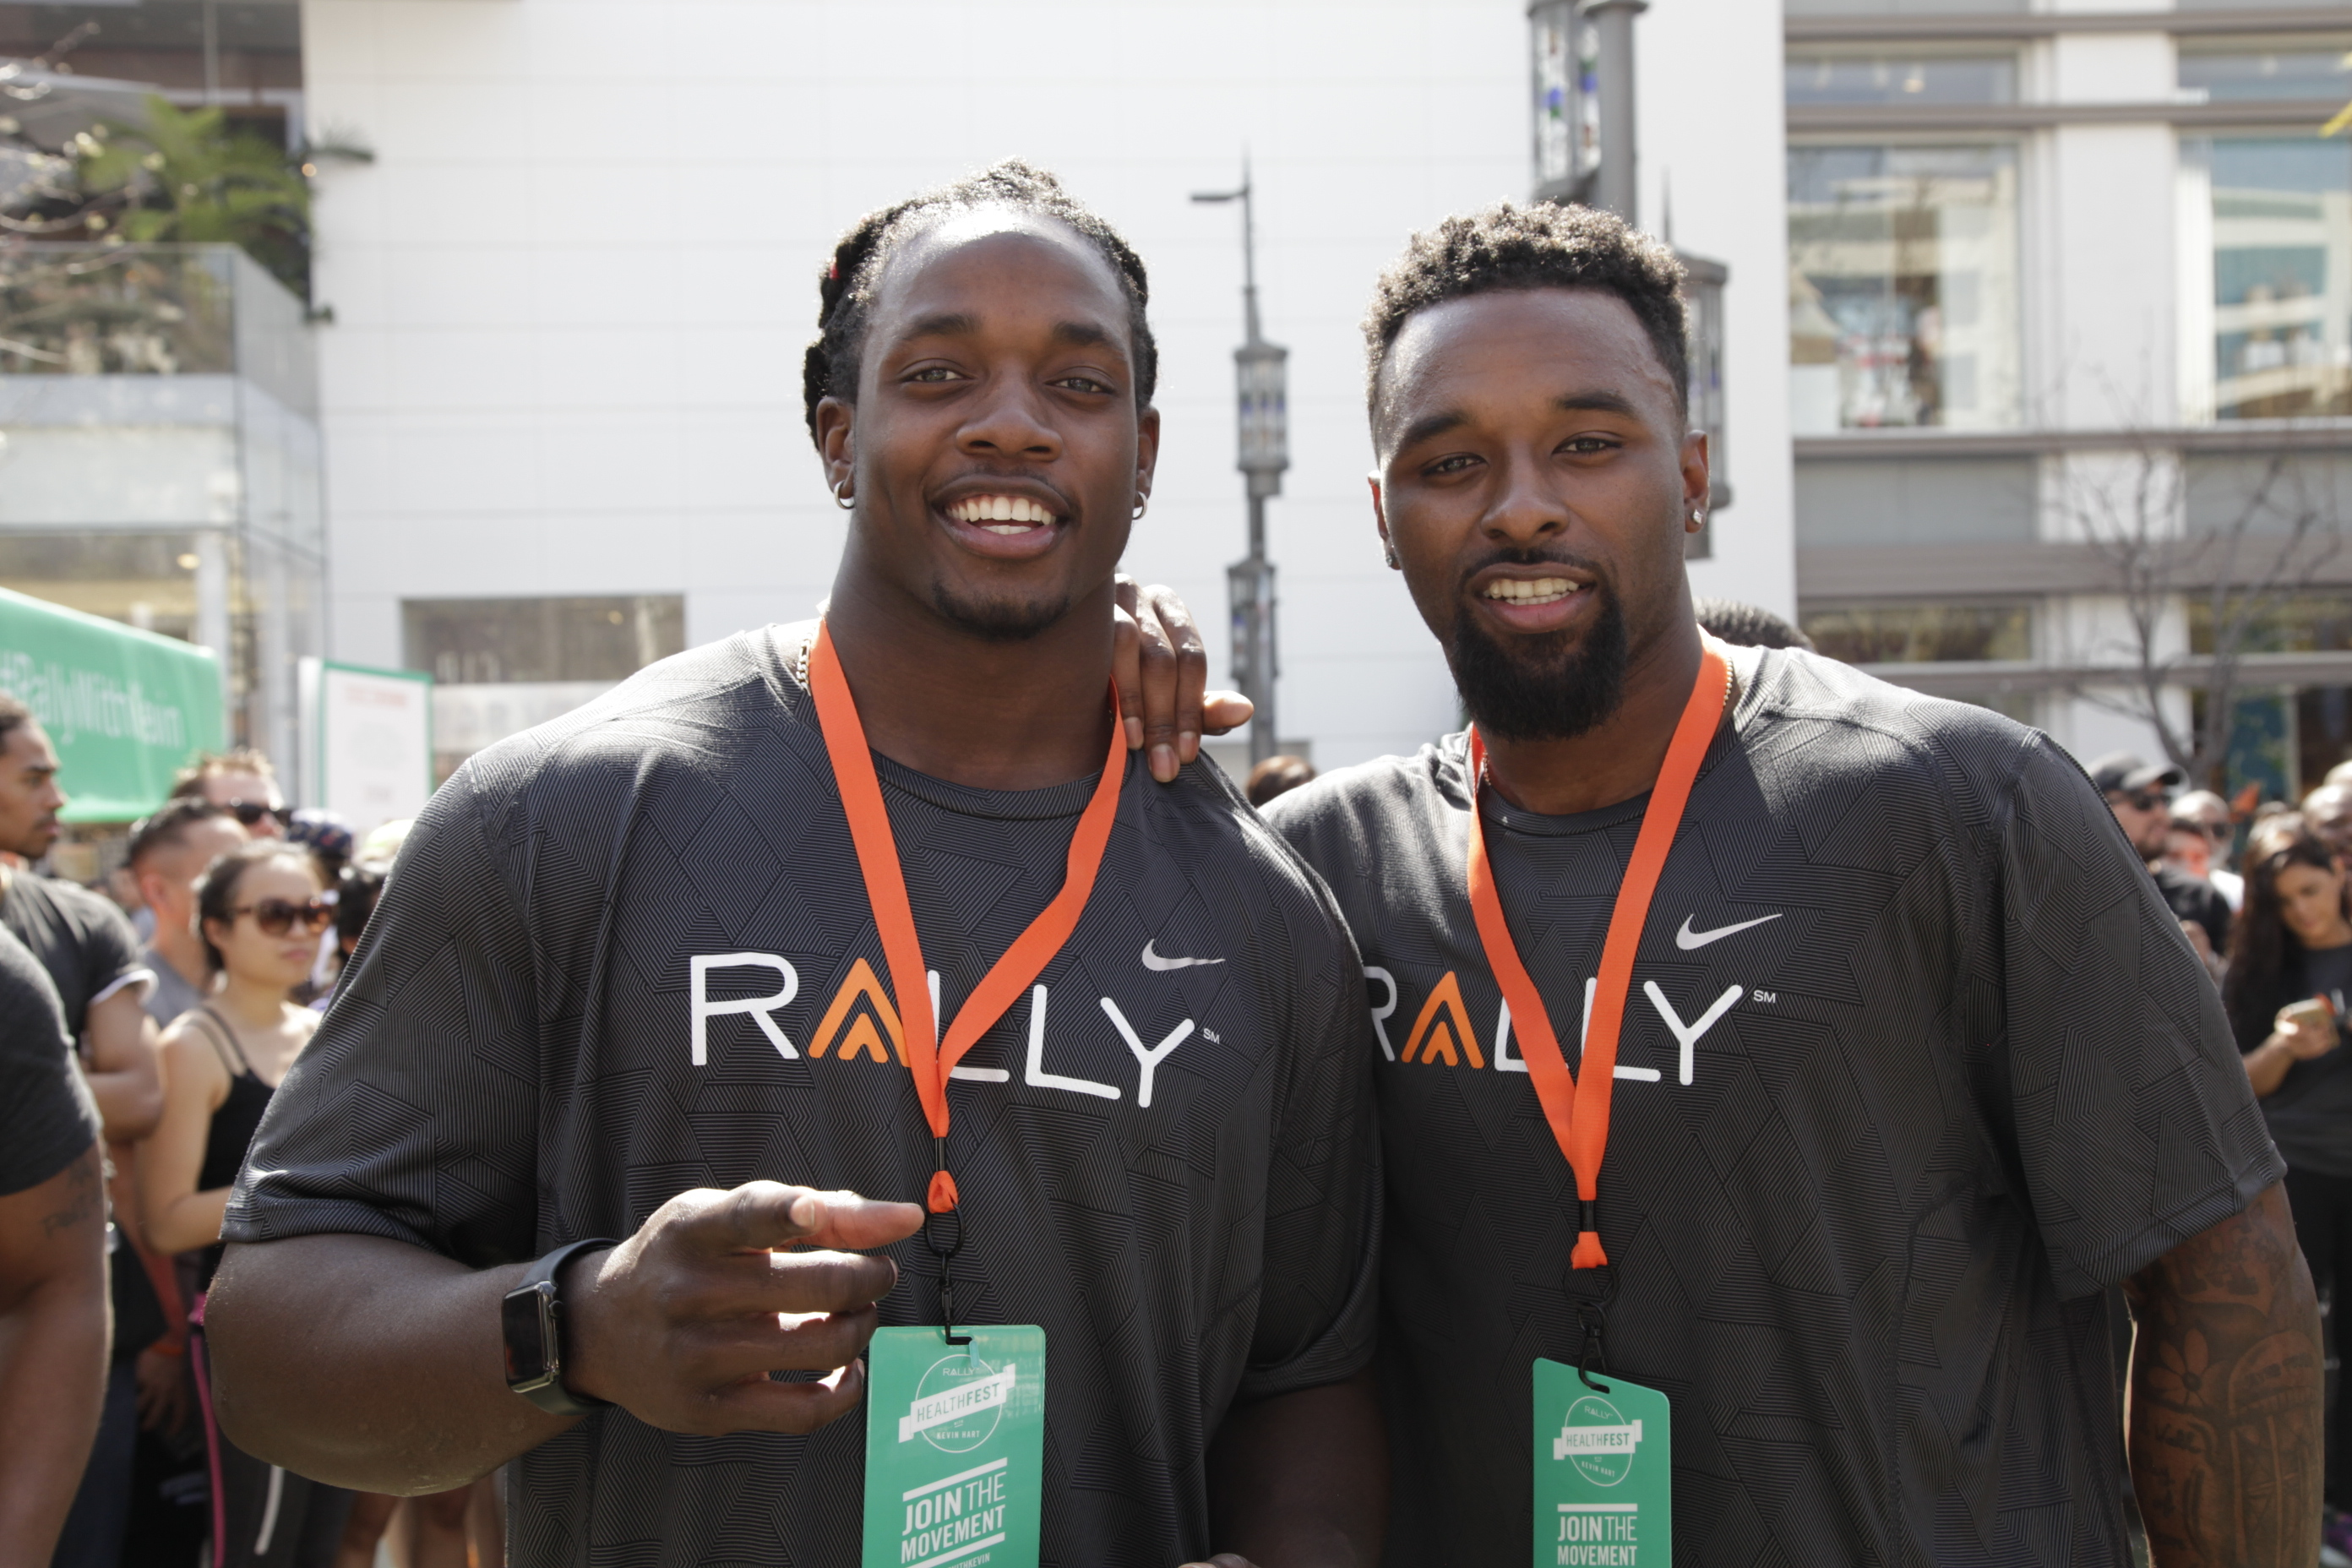 NFL Players Melvin Gordon and Jarvis Landry Named Rally